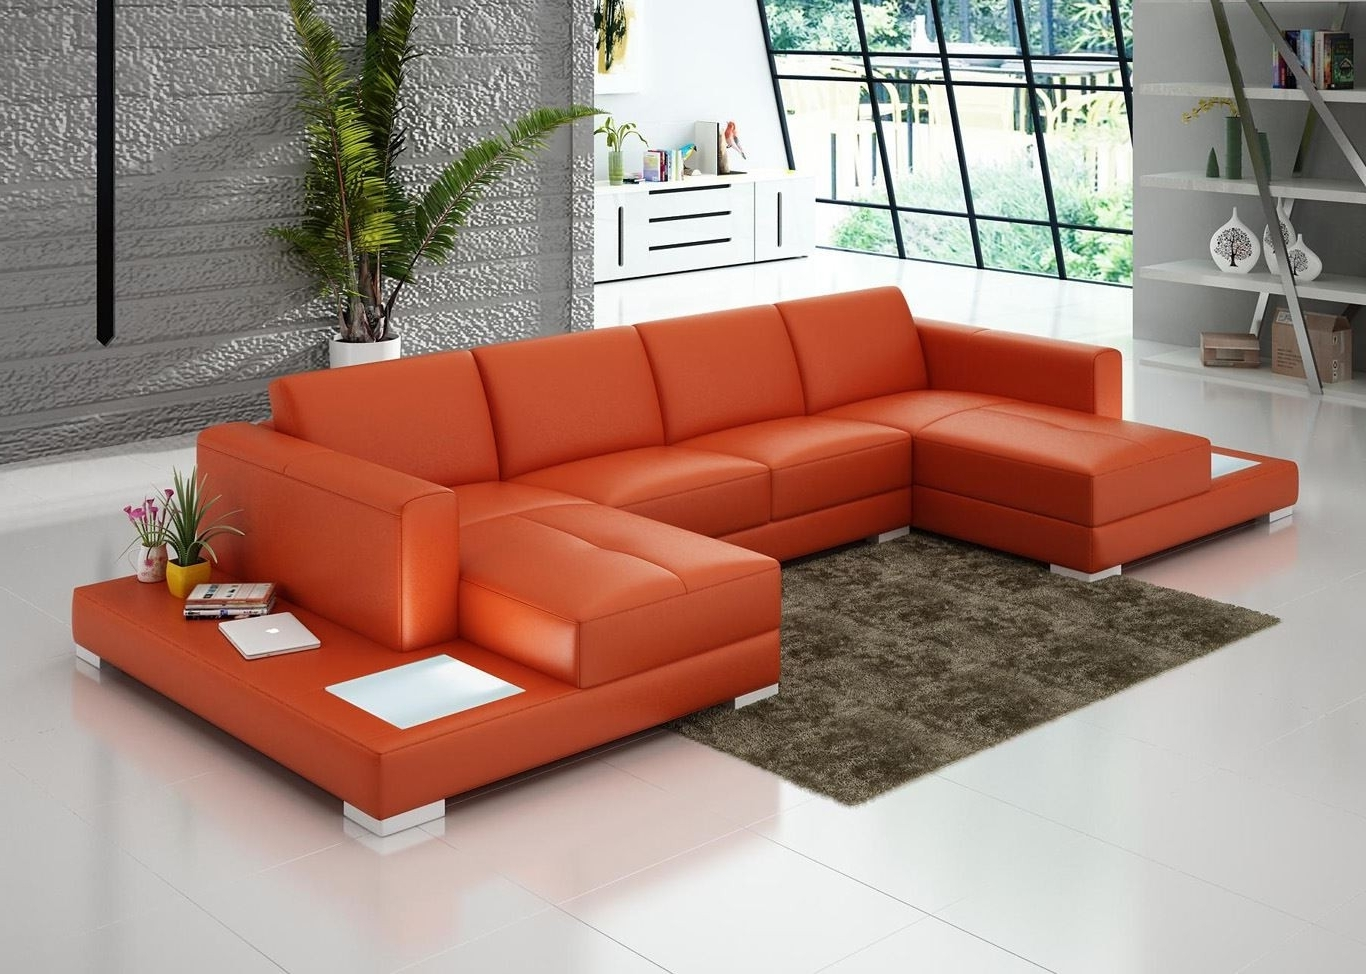 Latest Double Chaise Lounge Sofas Inside U Shaped Orange Leather Sofa With Double  Chaise Lounge And